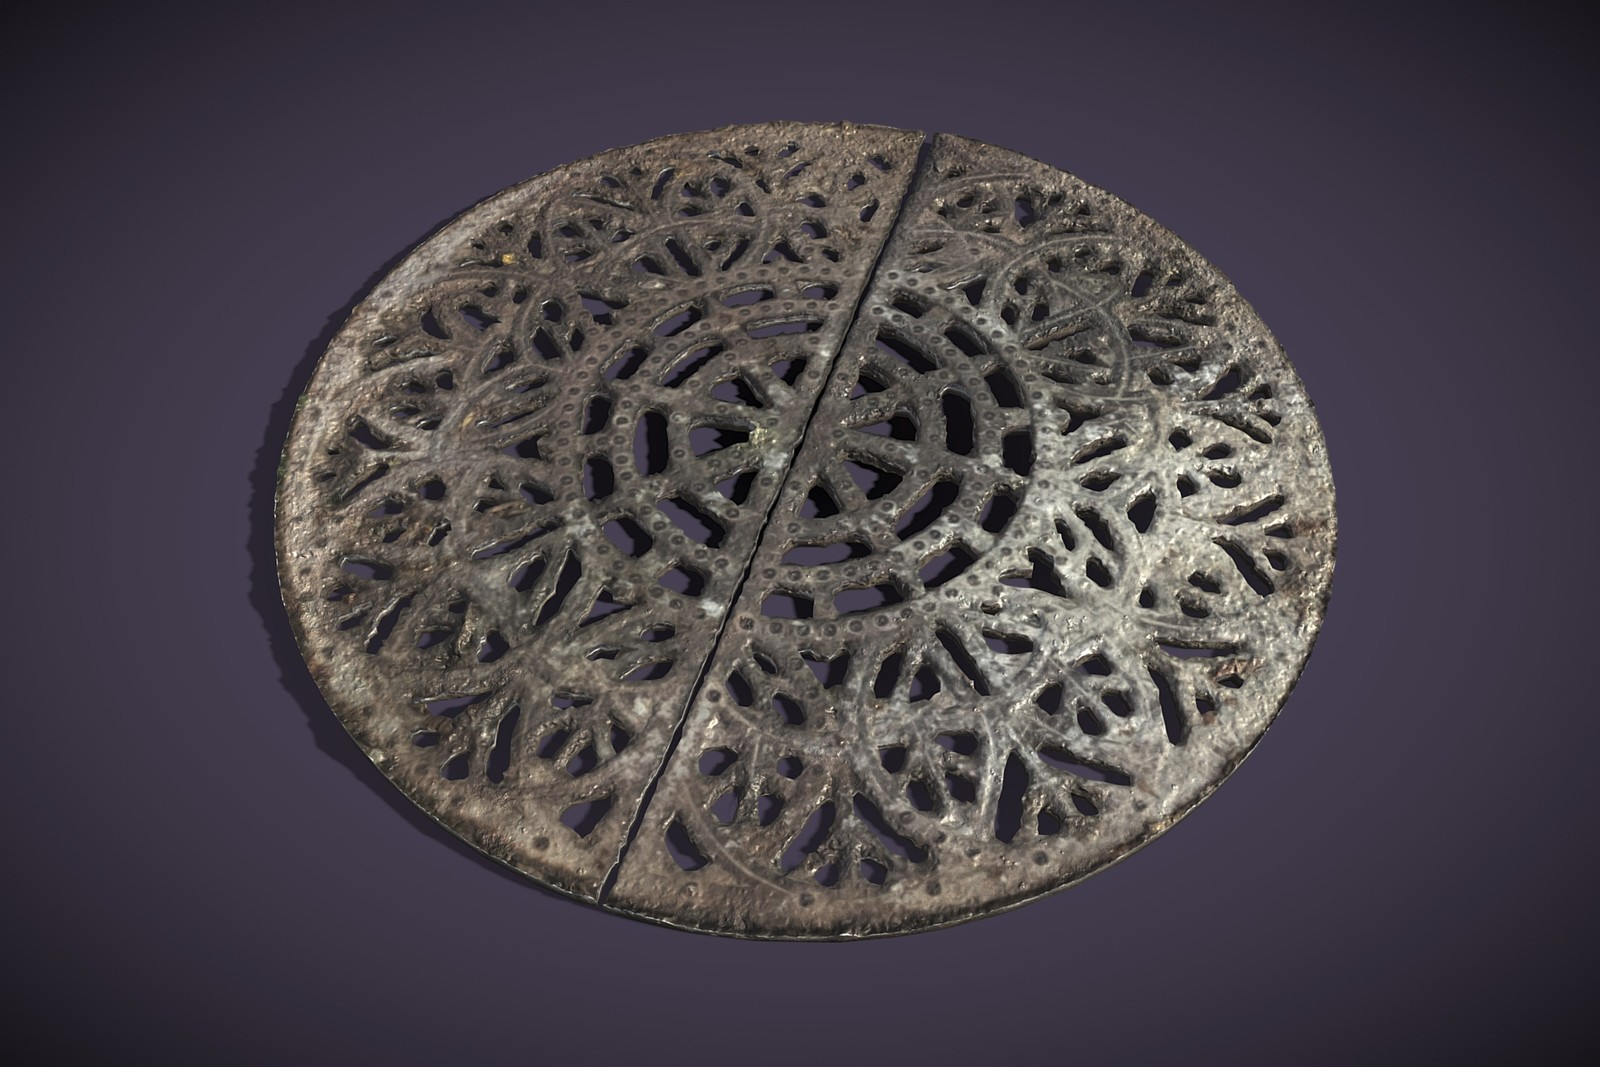 Ornate Sewer Grate